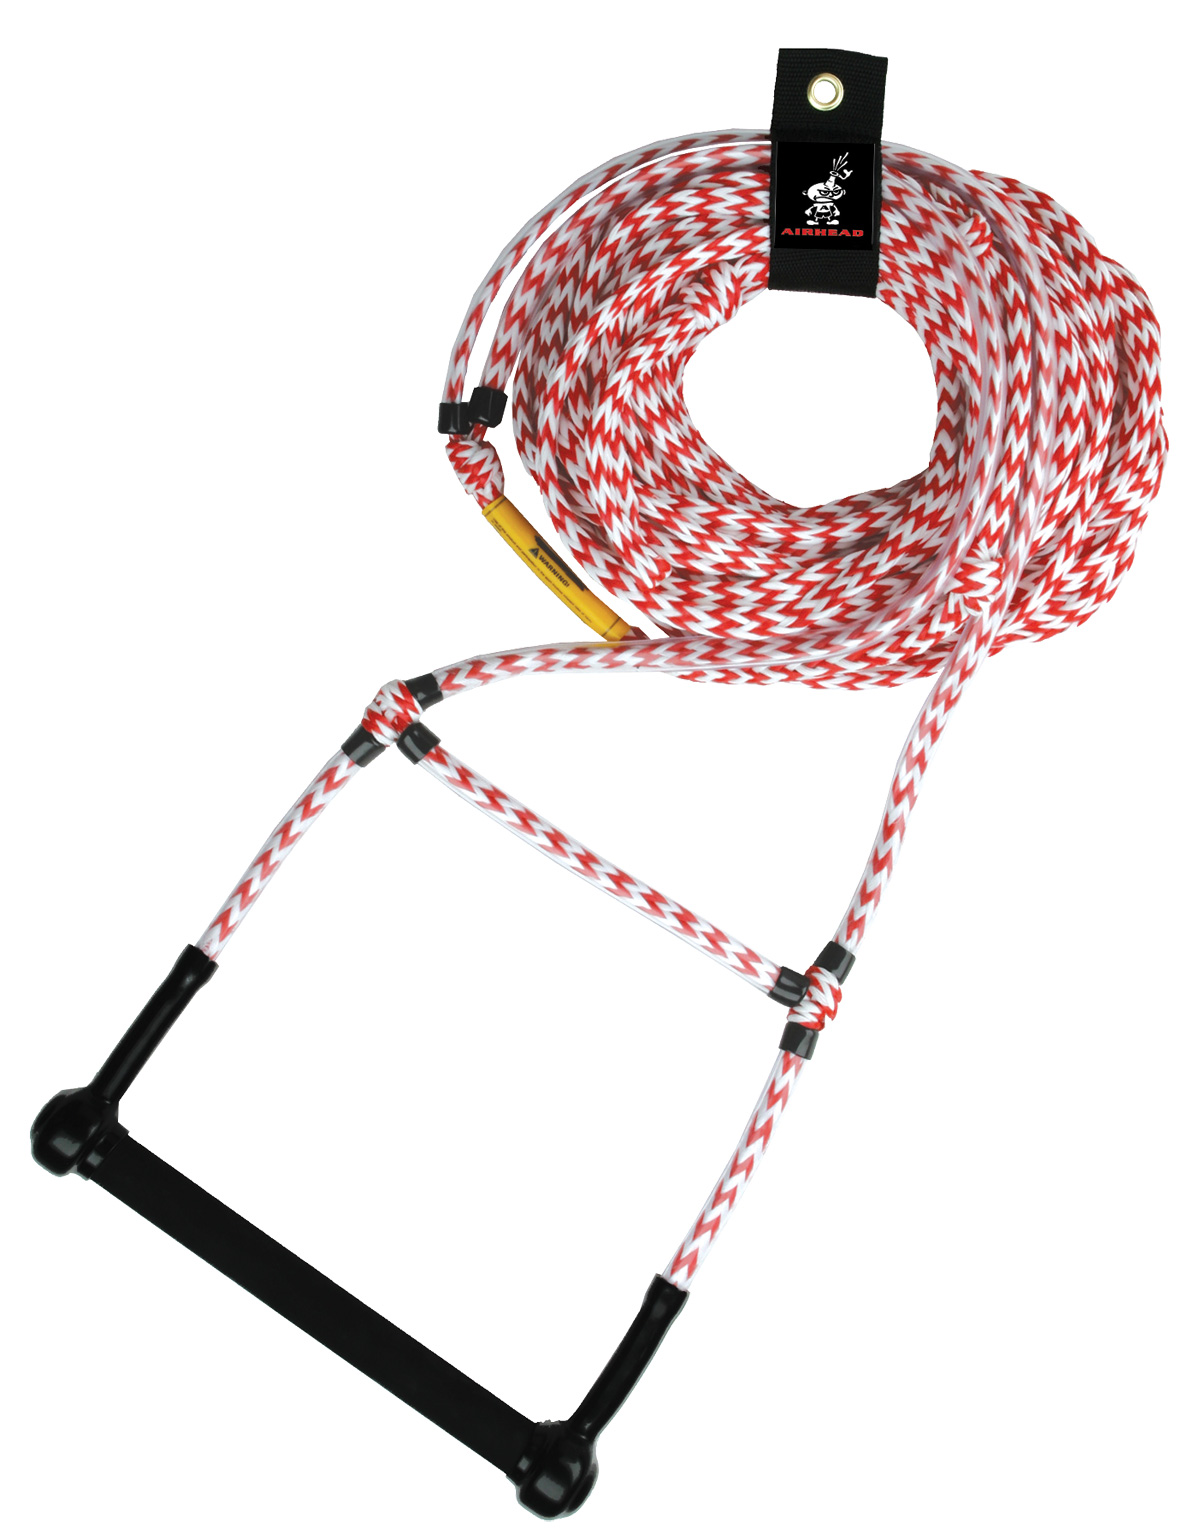 2 Section 75' Ski Rope by AIRHEAD SPORTS GROUP